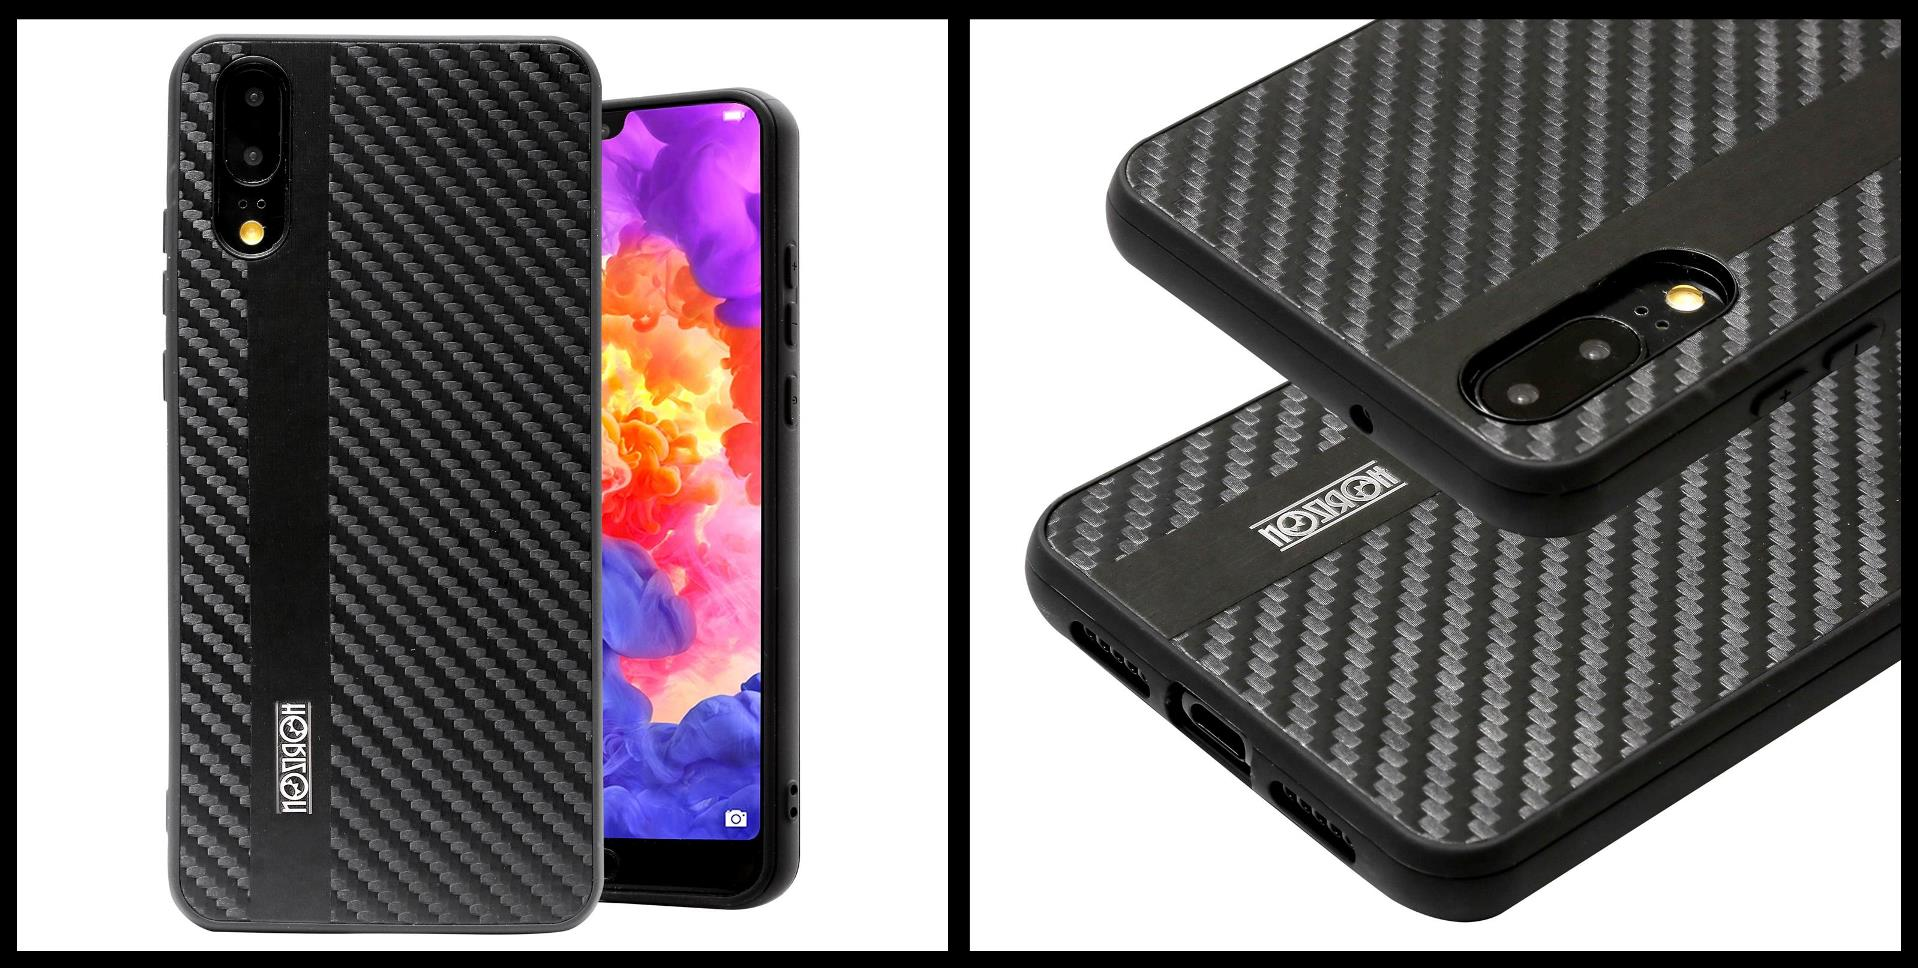 noziroh-carbon-huawei-p20-cover-case-shockproof-dark-design-black